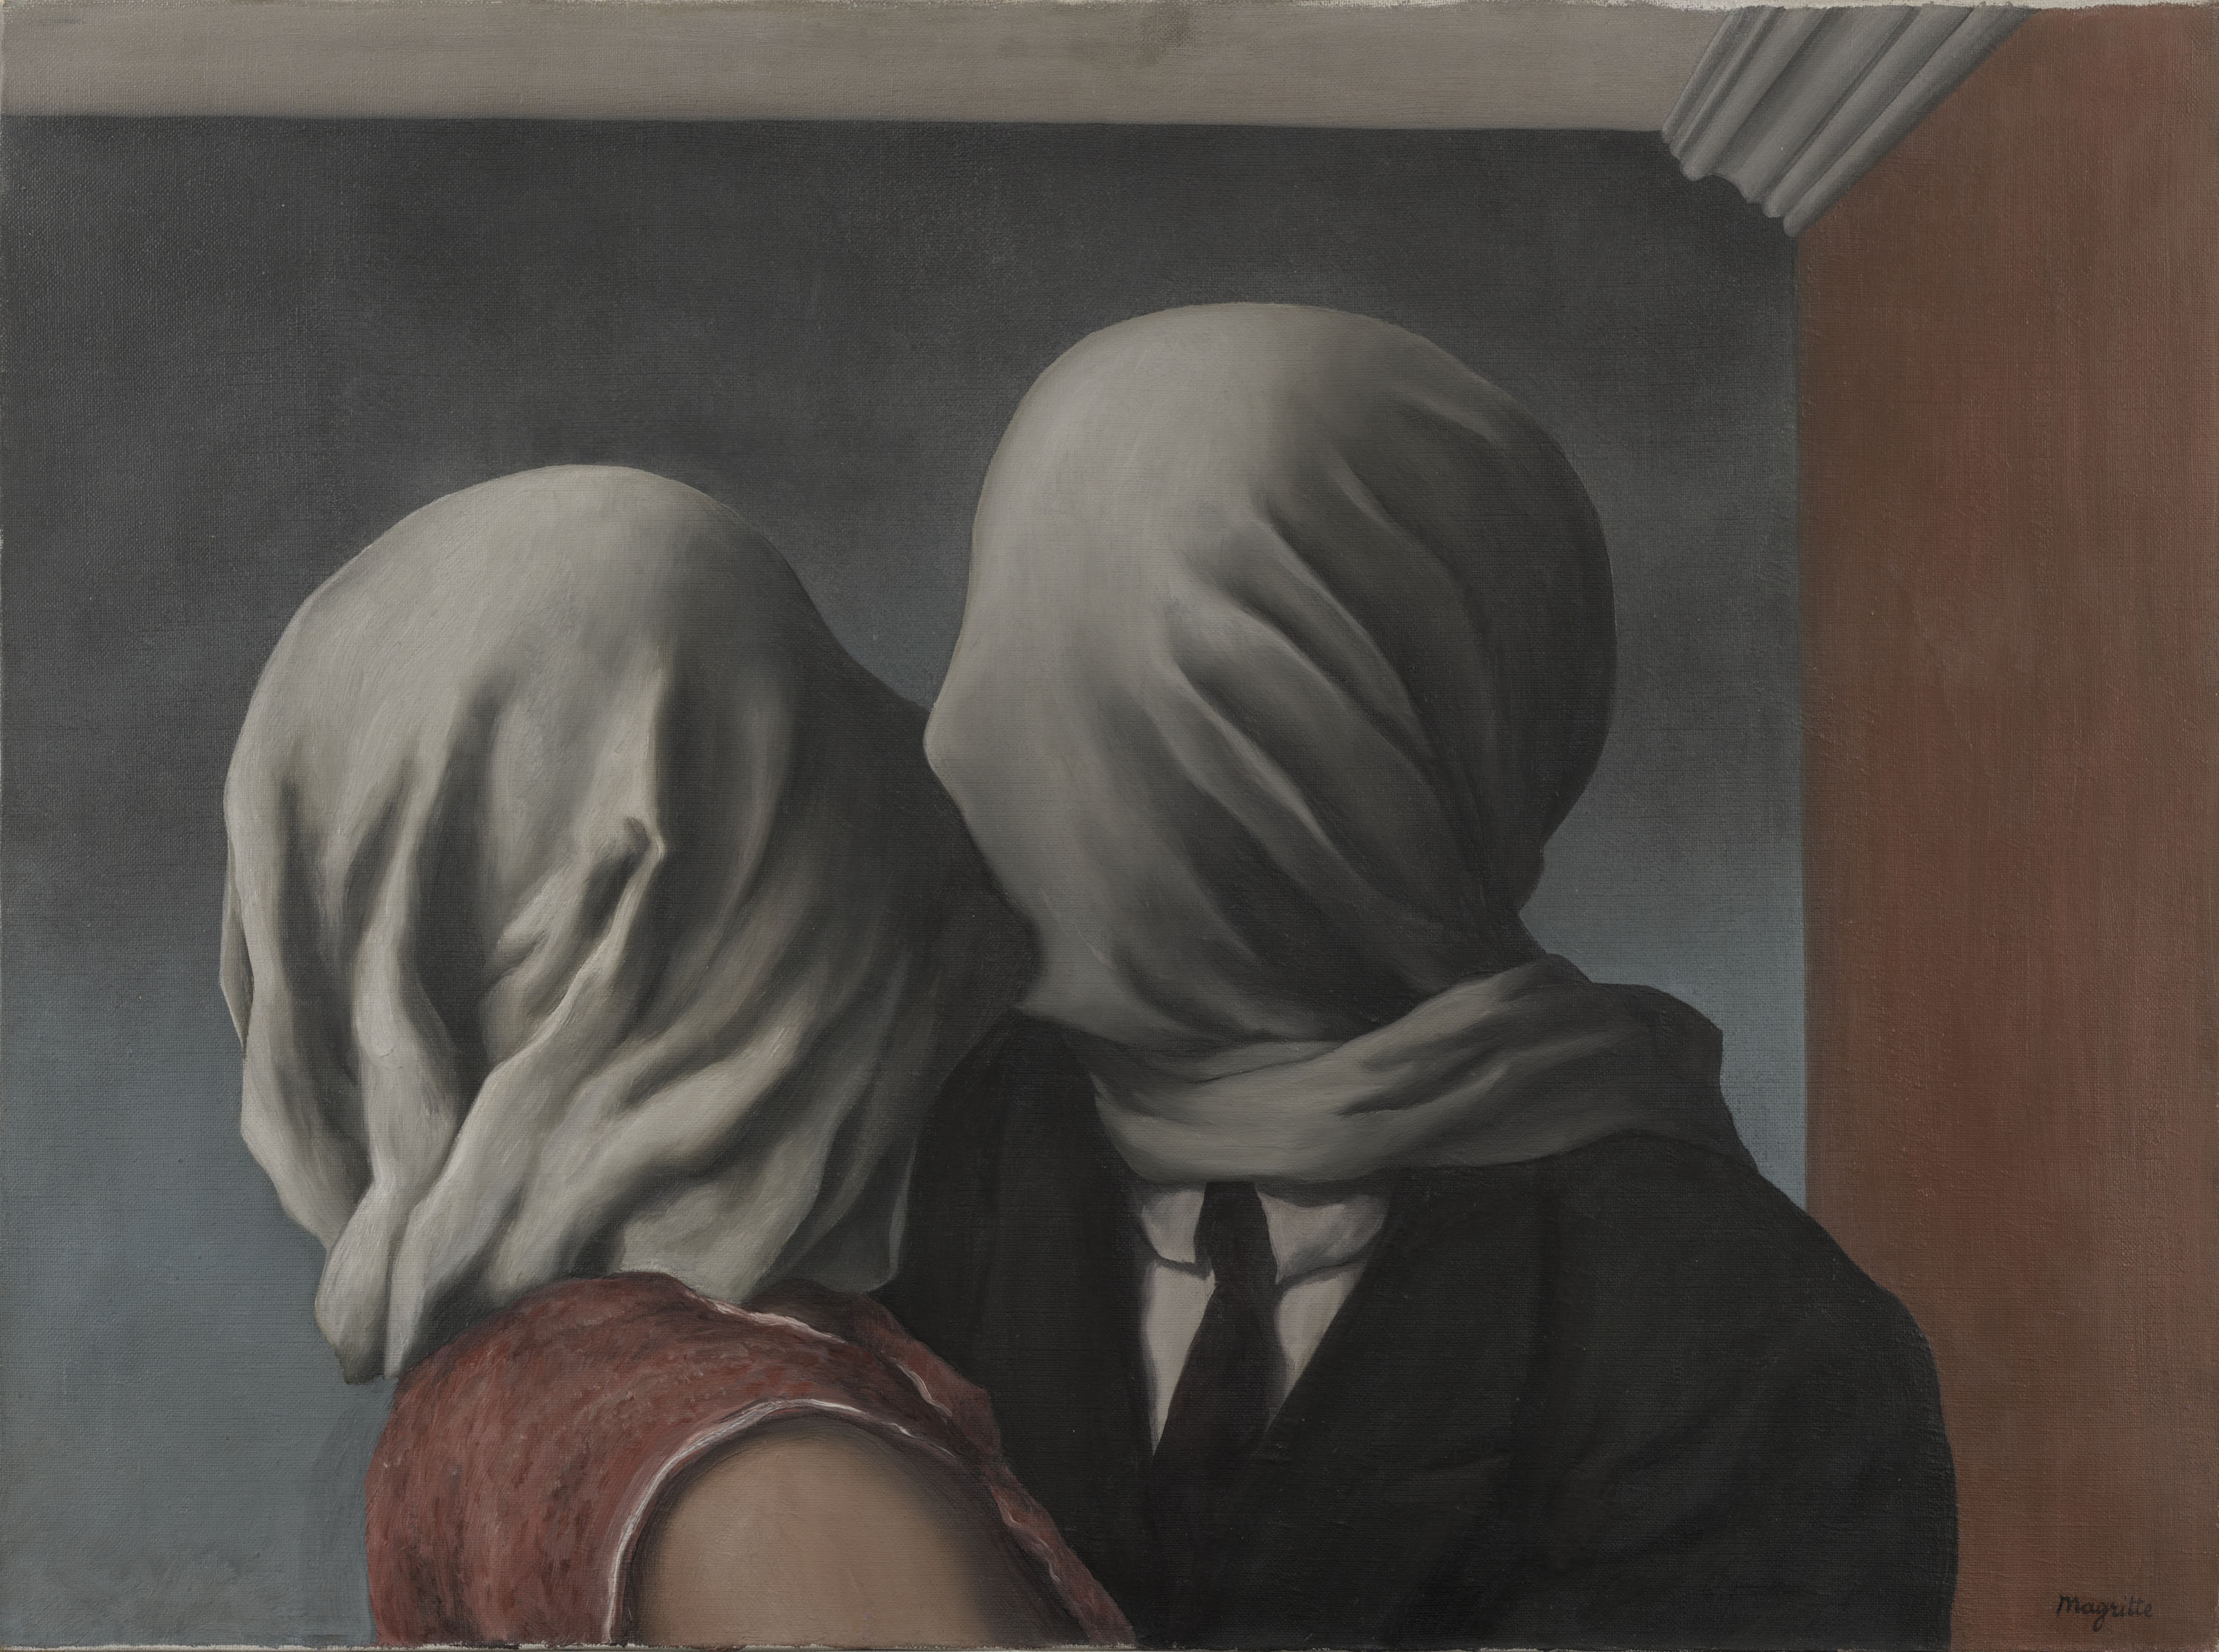 The Lovers, René Magritte